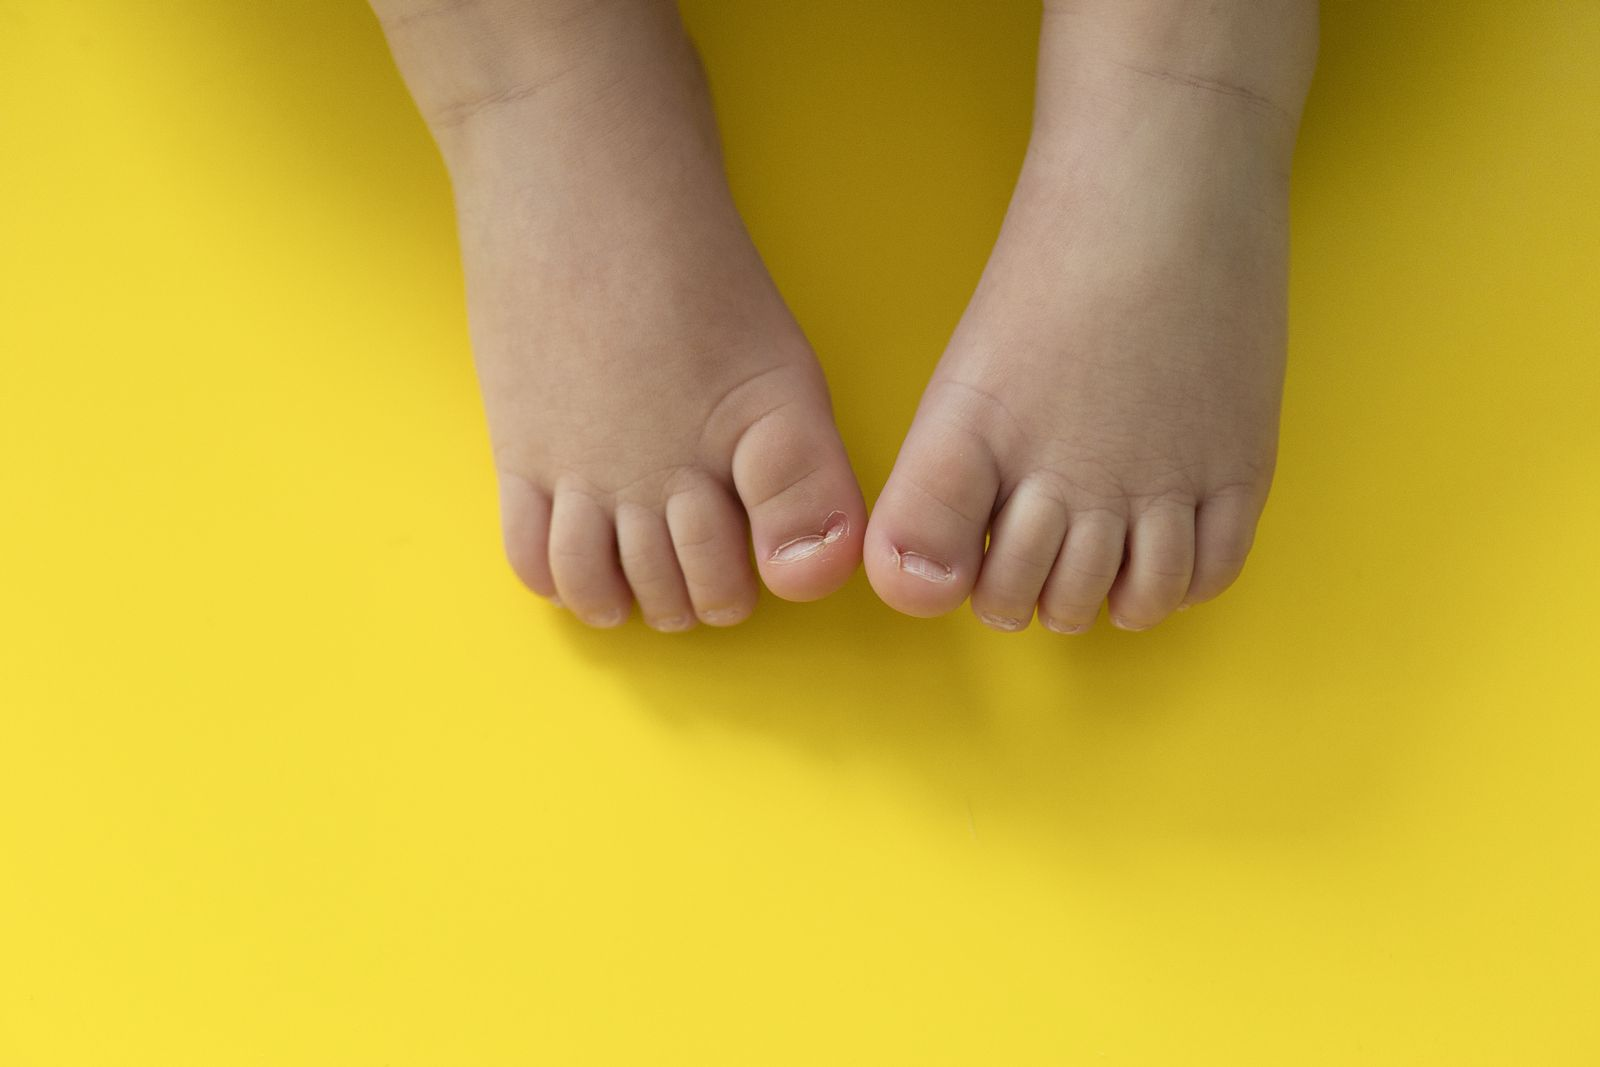 Protect babies and kids feet from ingrown toenails with proper trimming